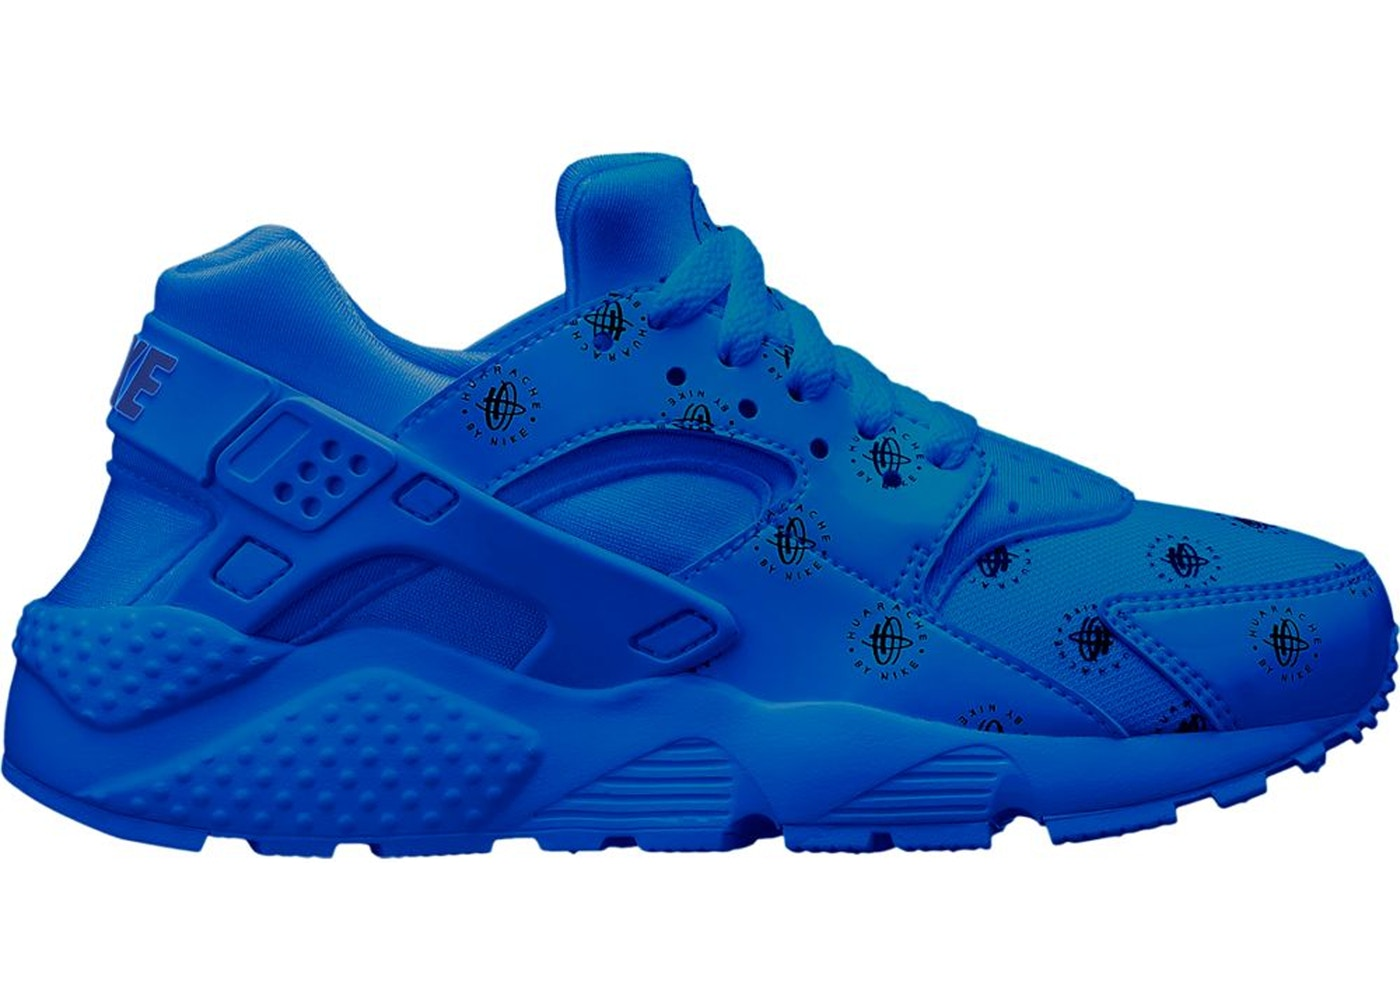 437814fd Air Huarache Run Logos Royal Blue (GS) - 909143-401